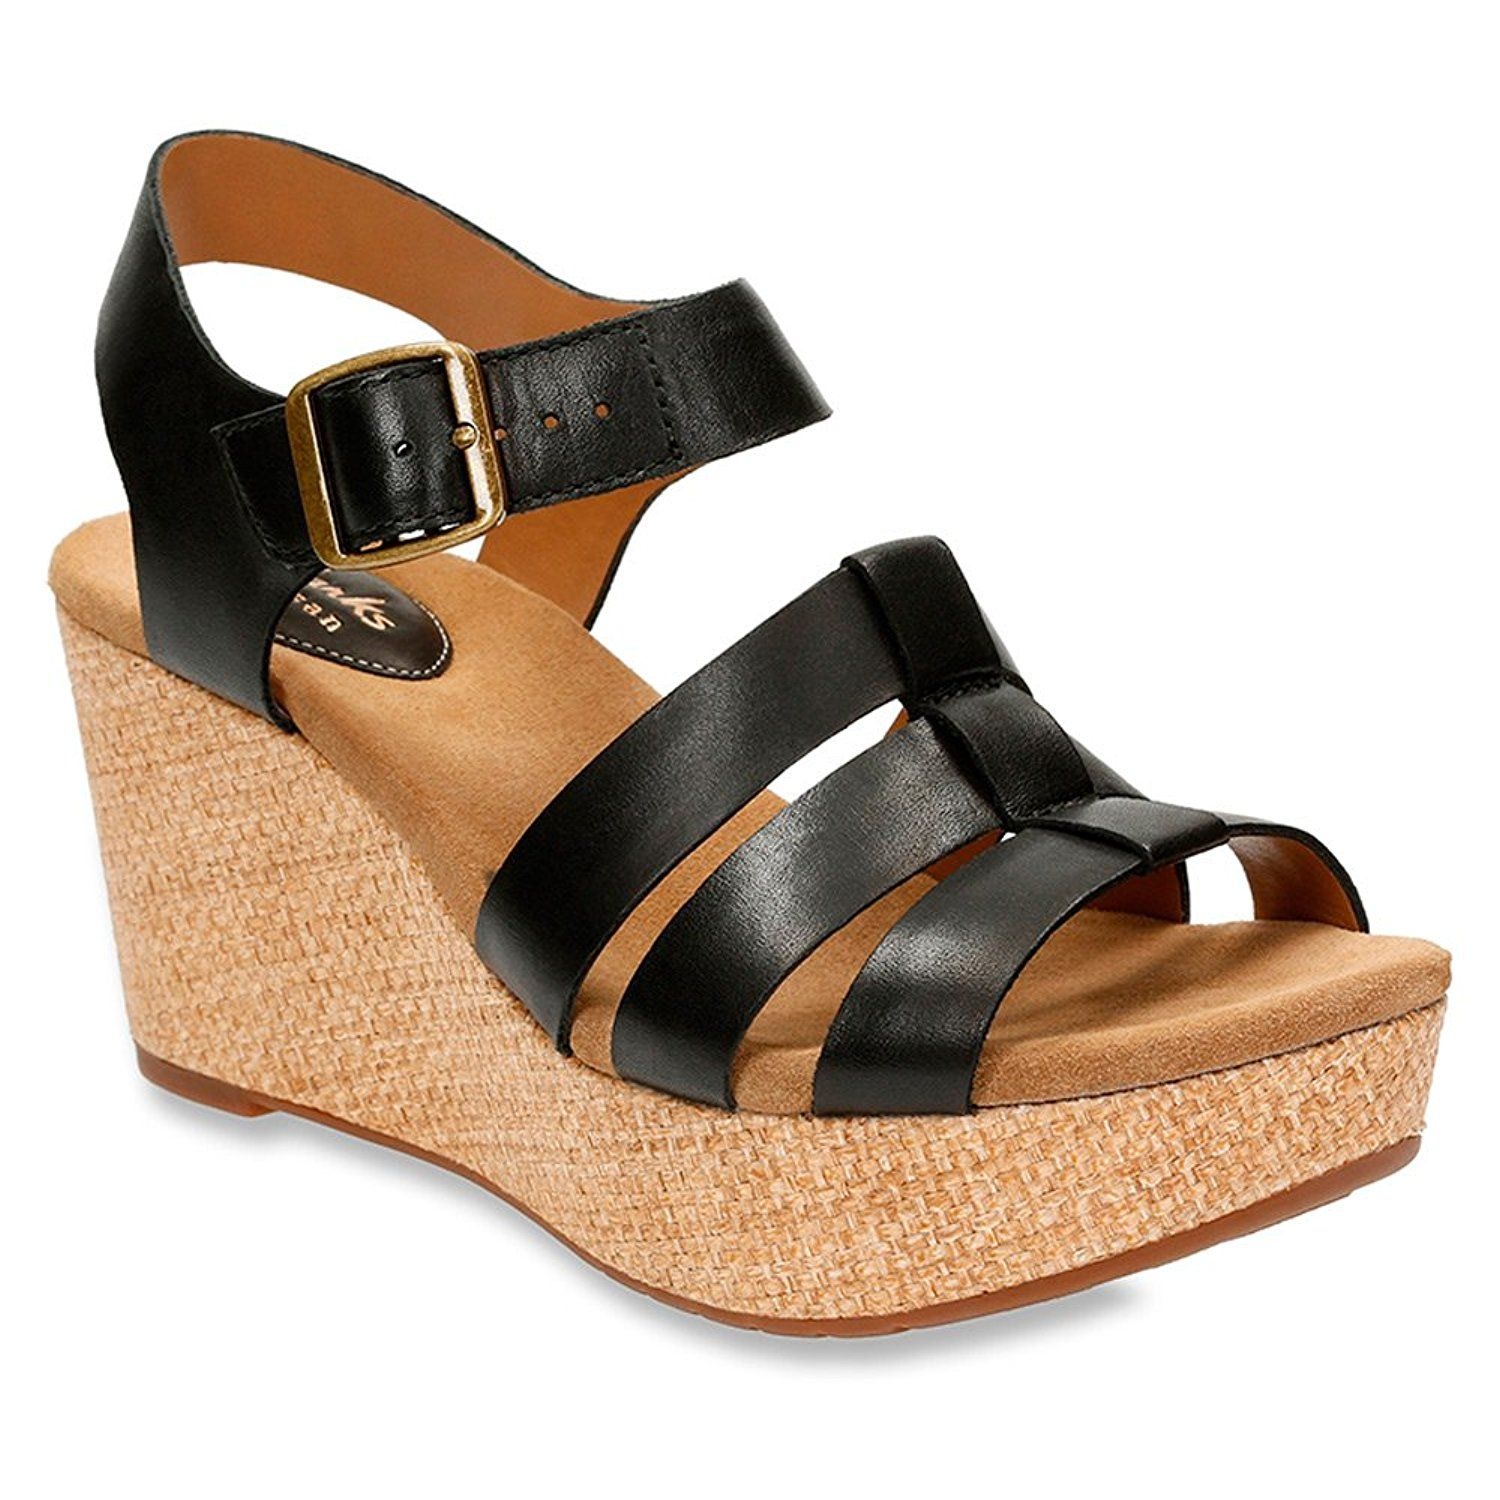 Leather wedge sandals, Leather sandals